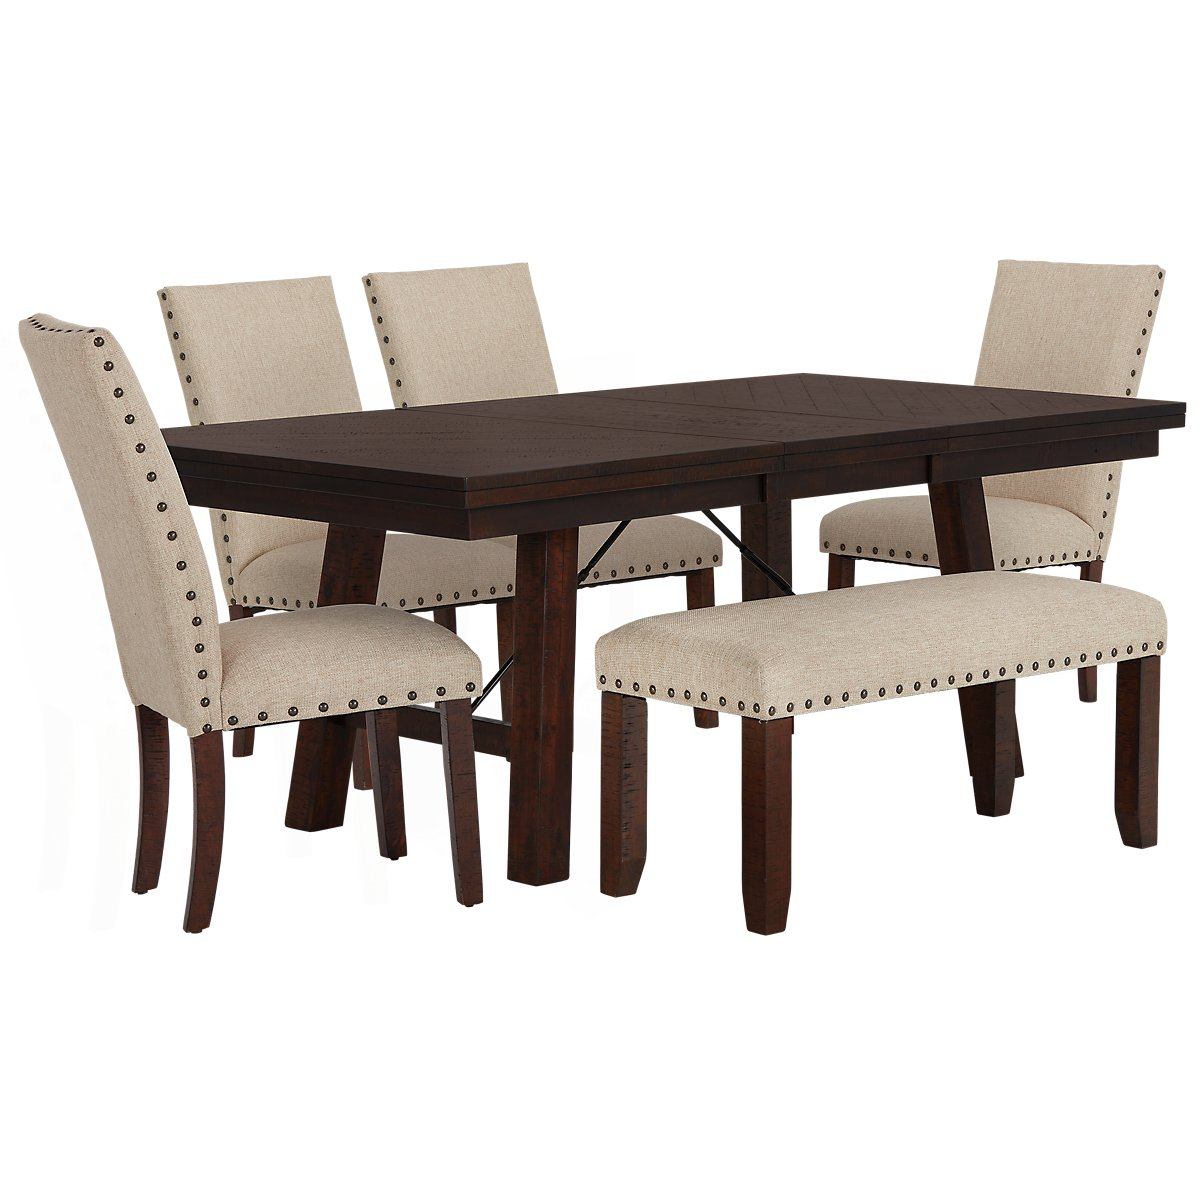 City Furniture Jax Beige Rectangular Table Chairs Bench - Rectangle table with 4 chairs